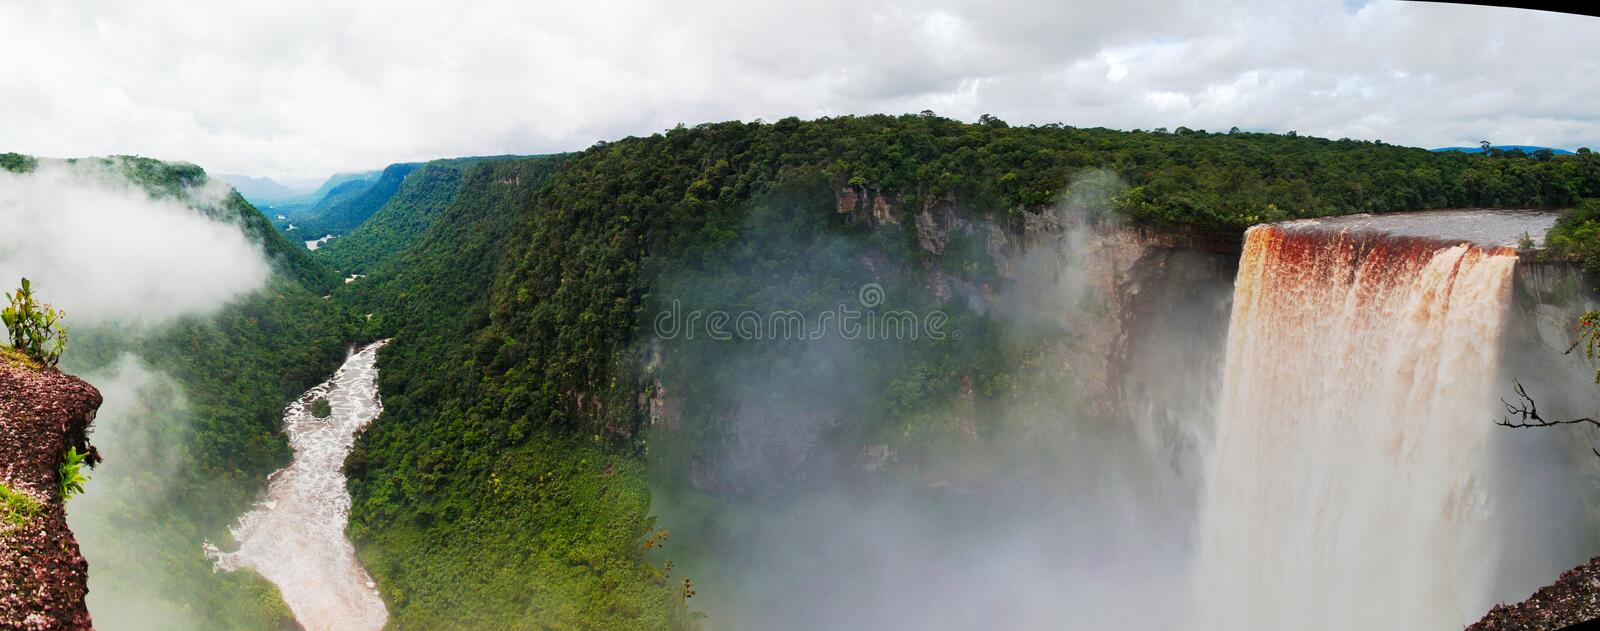 Kaieteur waterfall, one of the tallest falls in the world, potaro river Guyana. Kaieteur waterfall, one of the tallest falls in the world at potaro river Guyana stock images